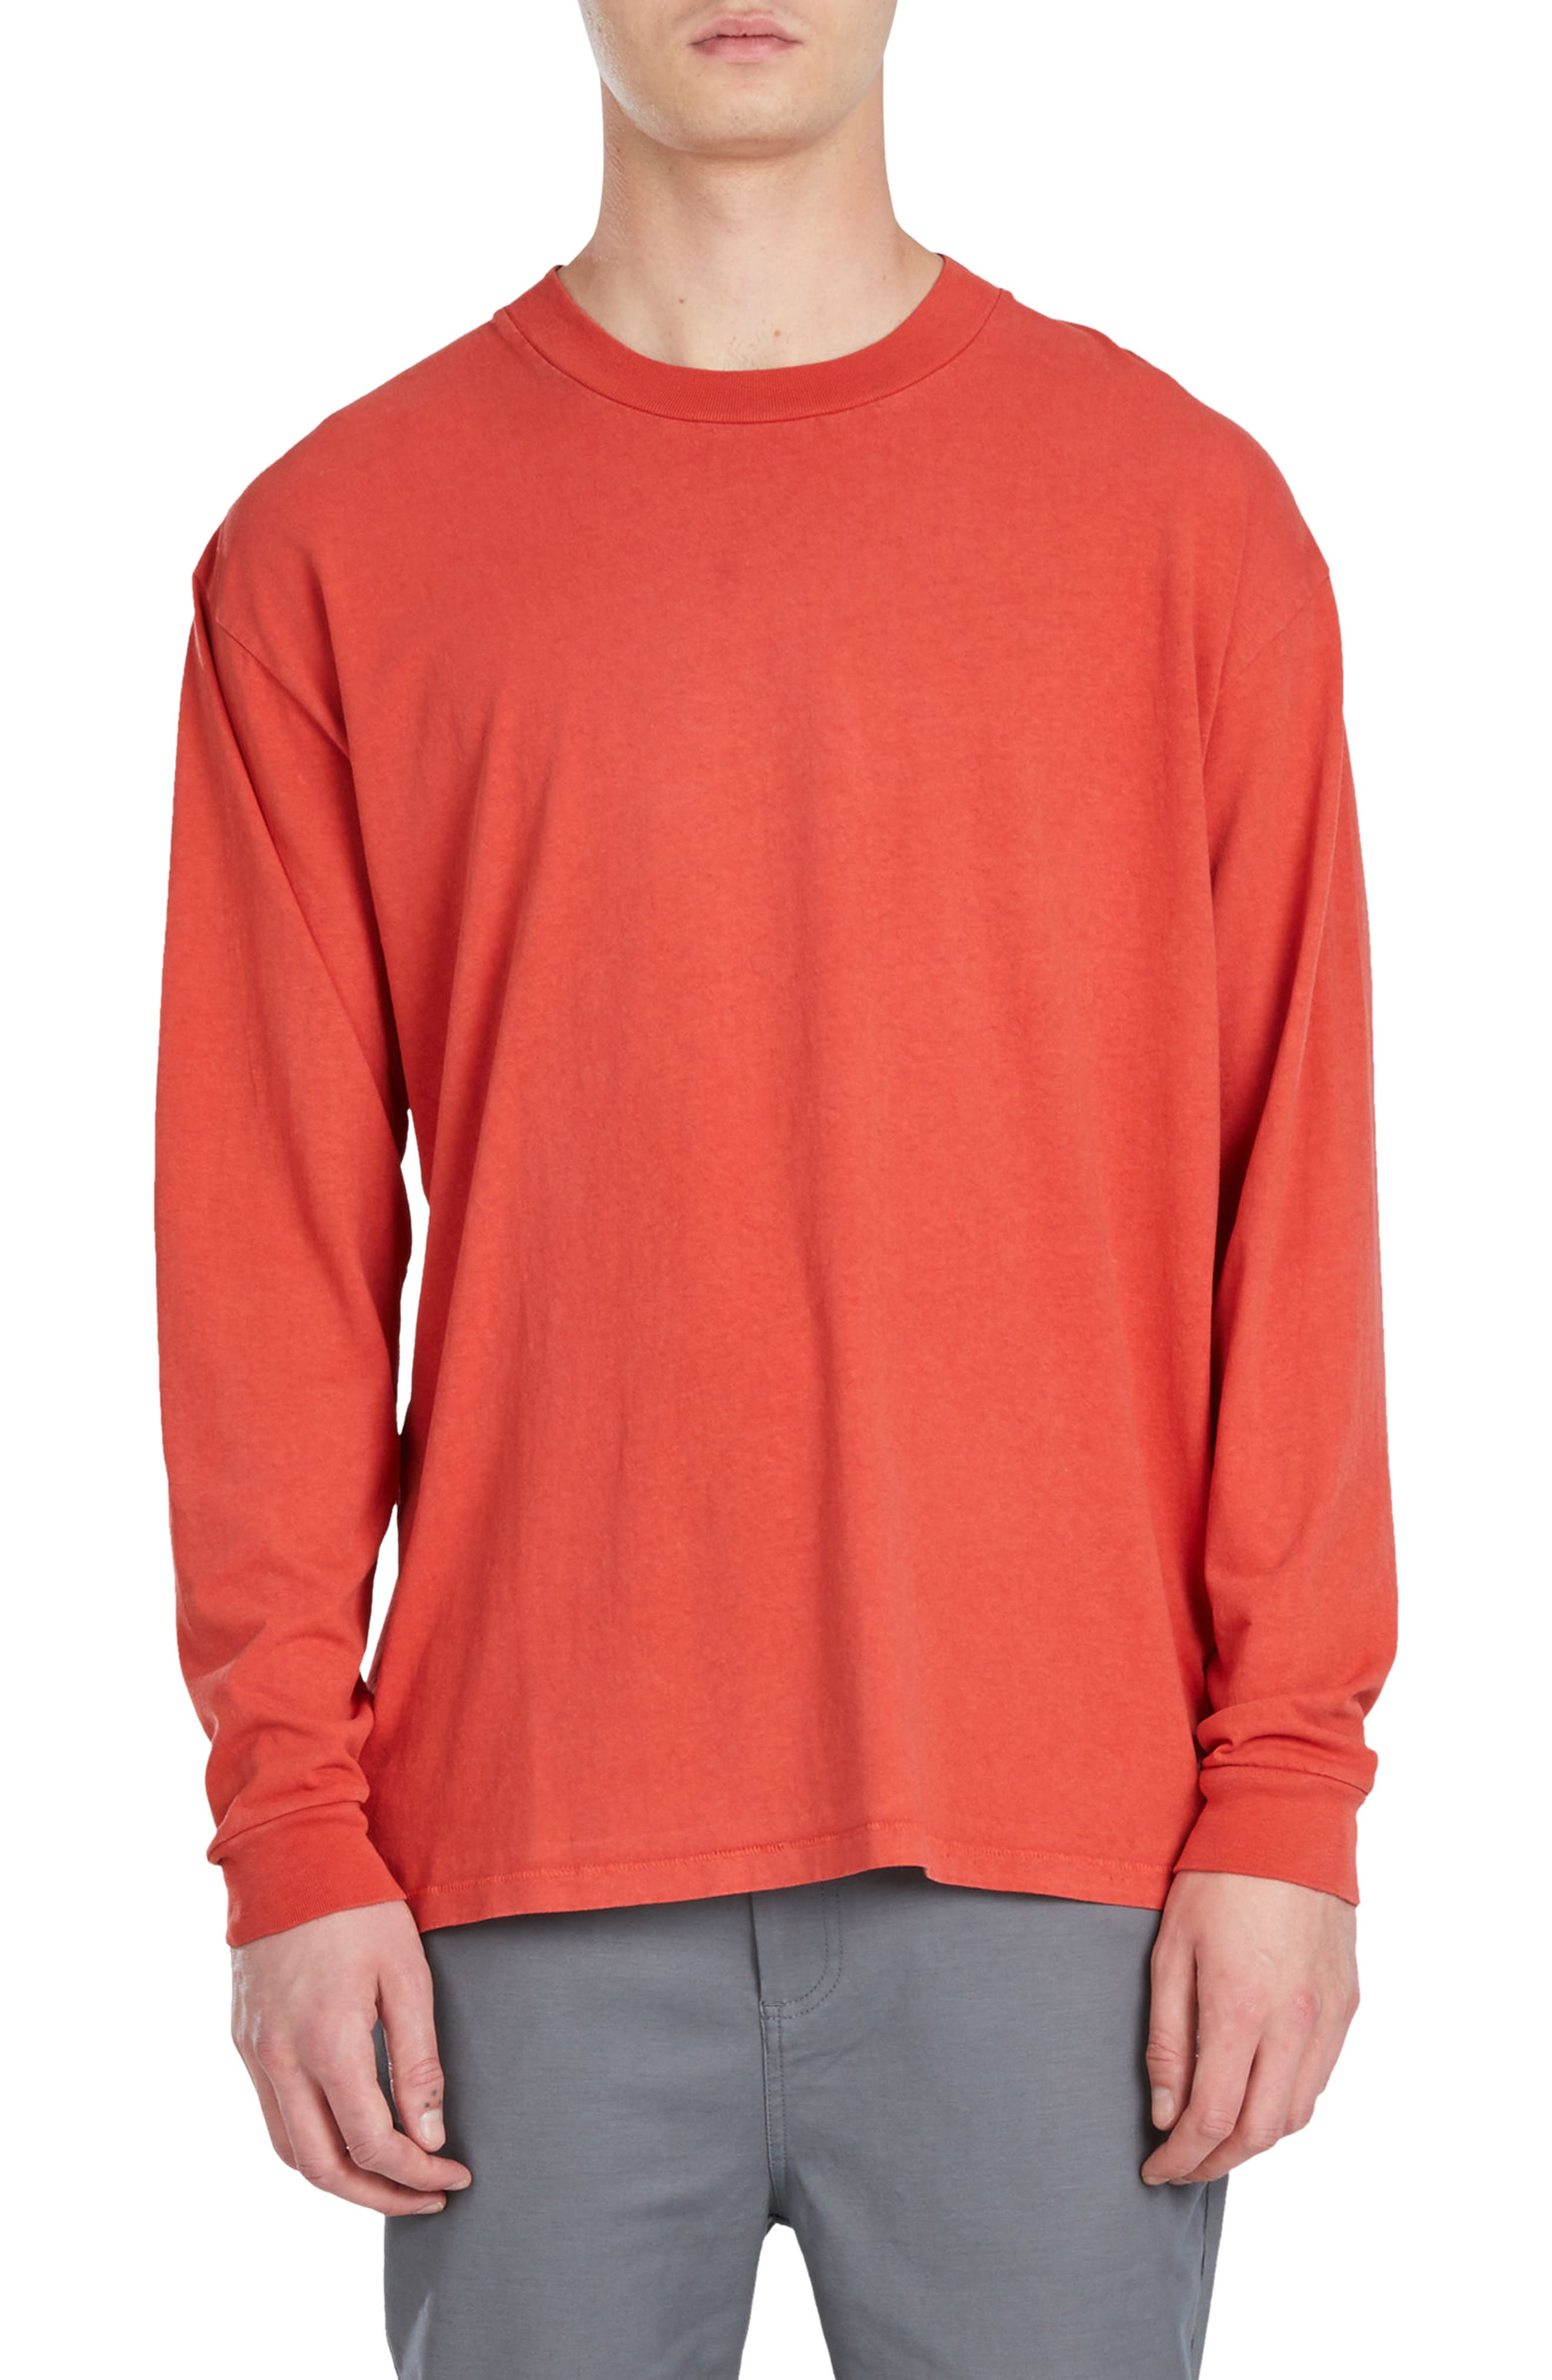 Alternate Image 1 Selected - ZANEROBE Boxy Long Sleeve T-Shirt